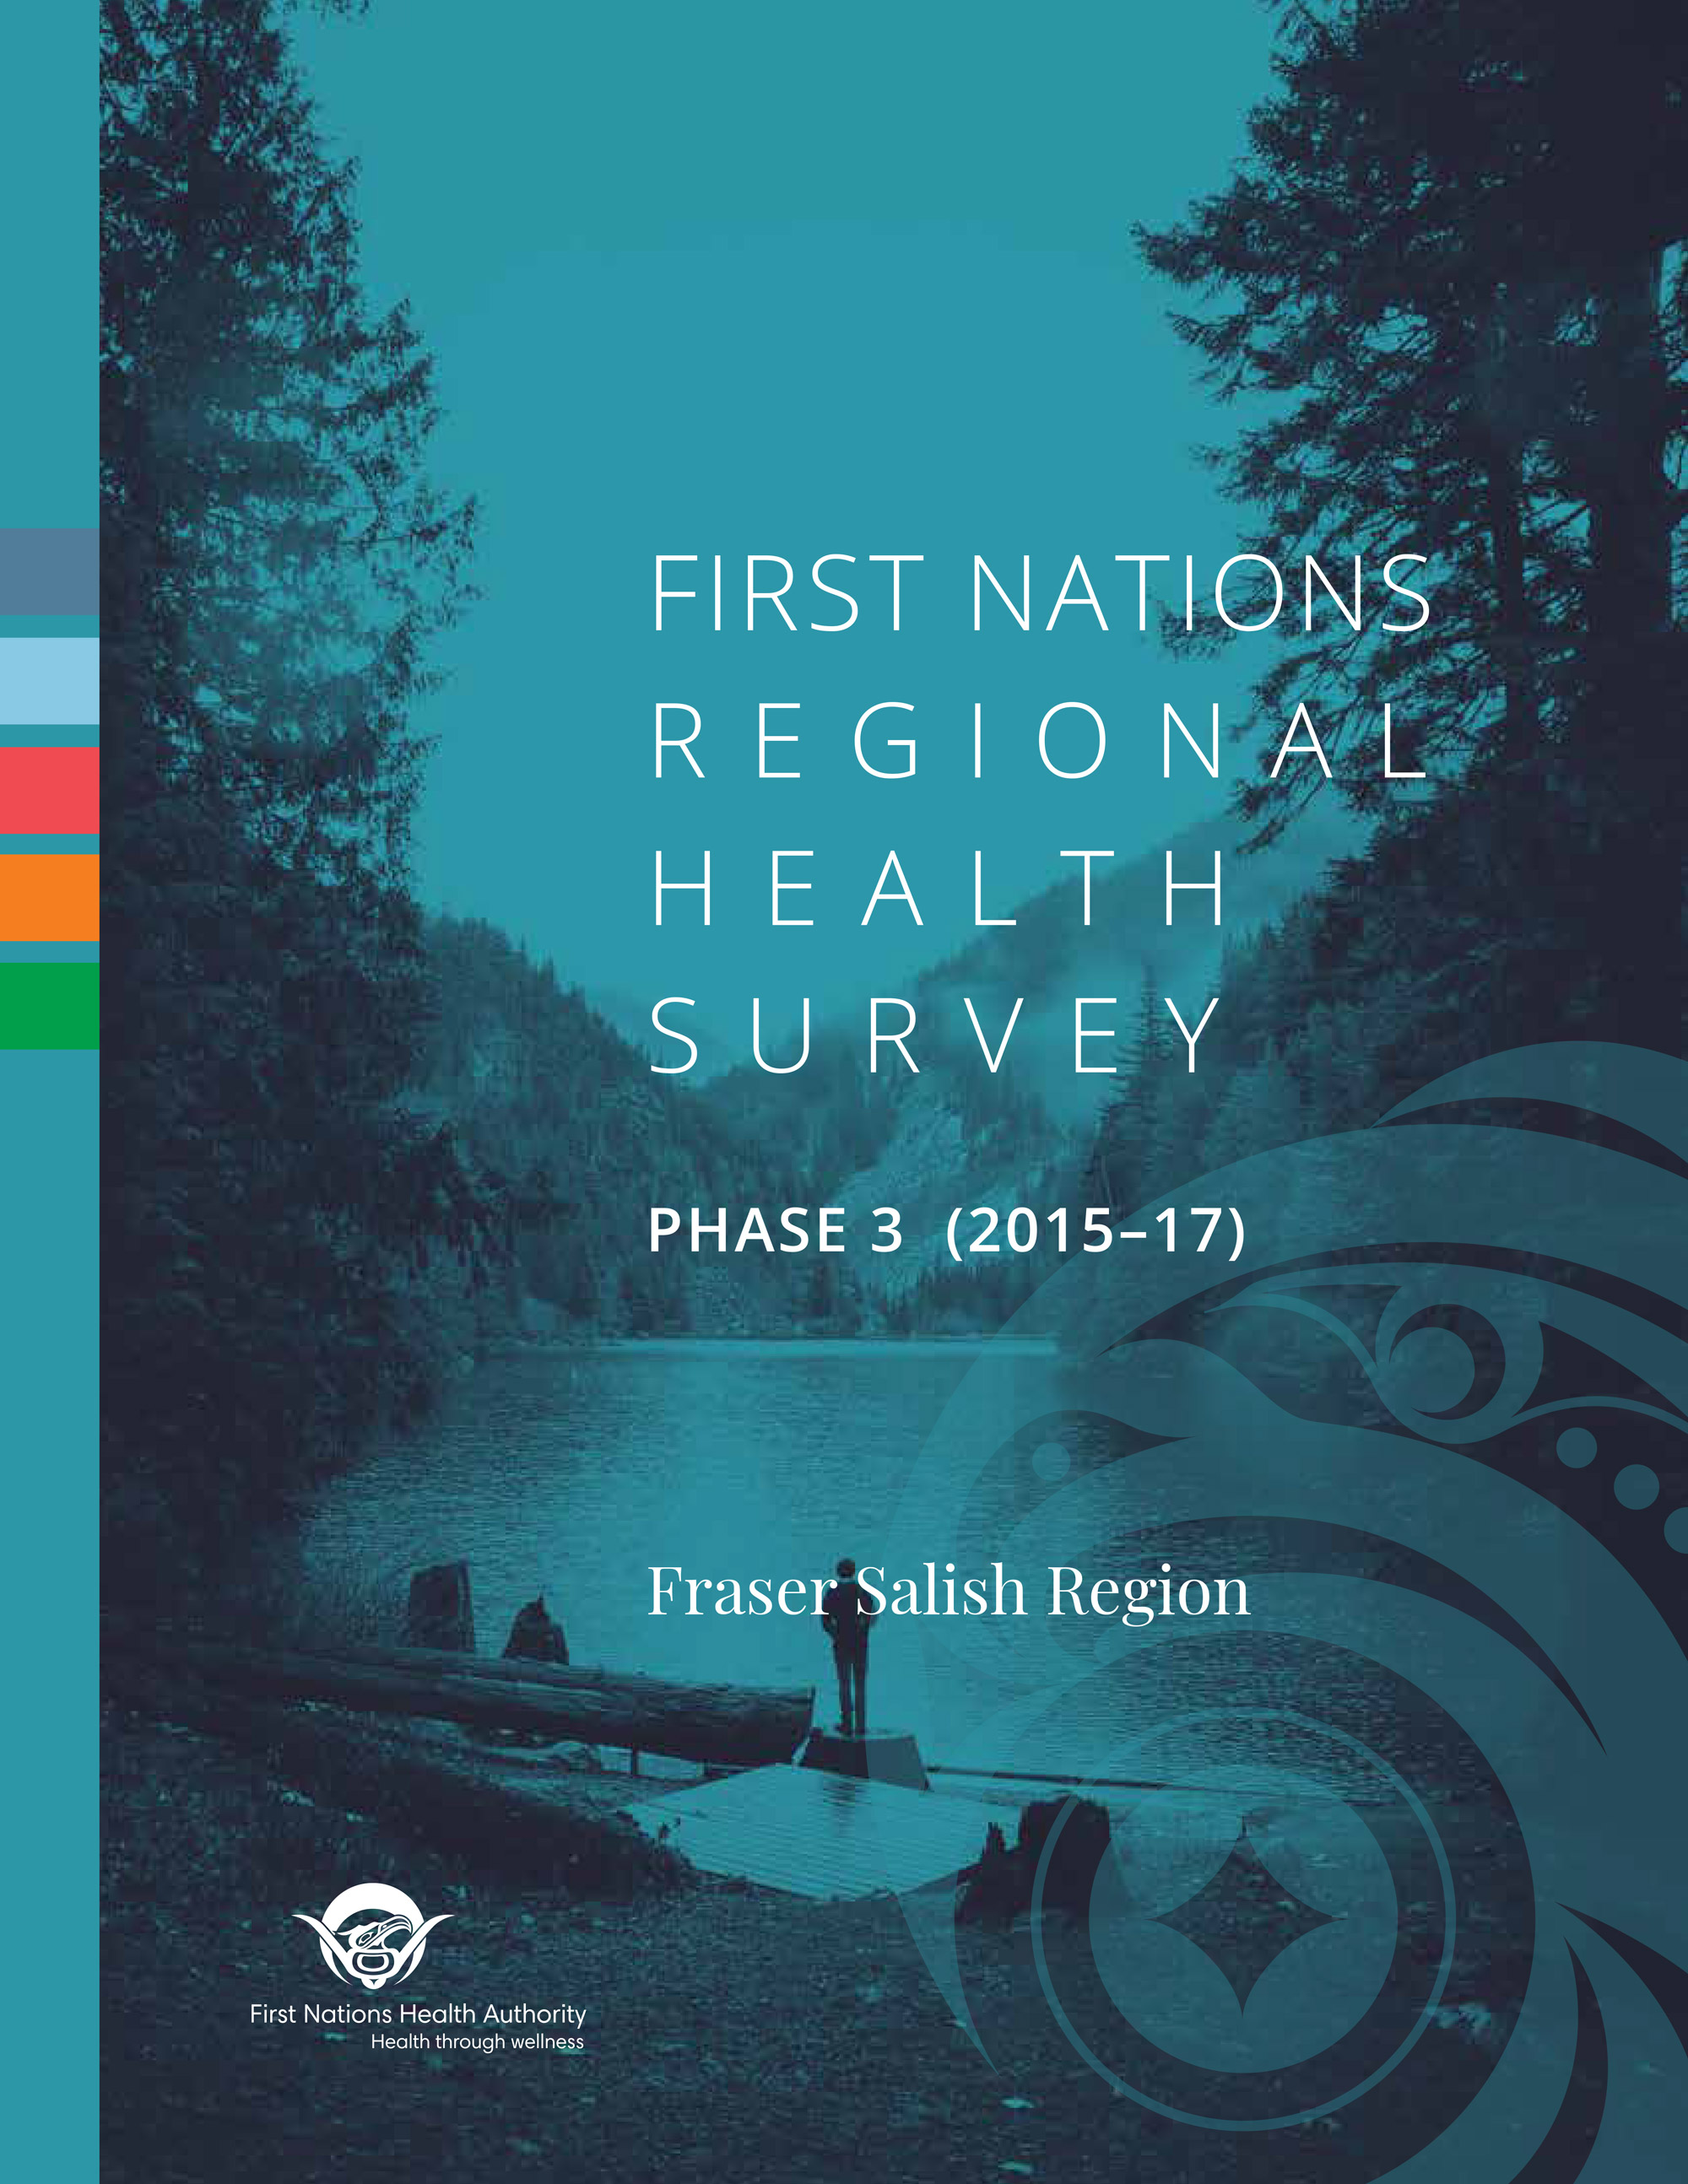 FNHA-First-Nations-Regional-Health-Survey-Phase-3-2015-2017-Fraser-Salish-Region-Cover.jpg